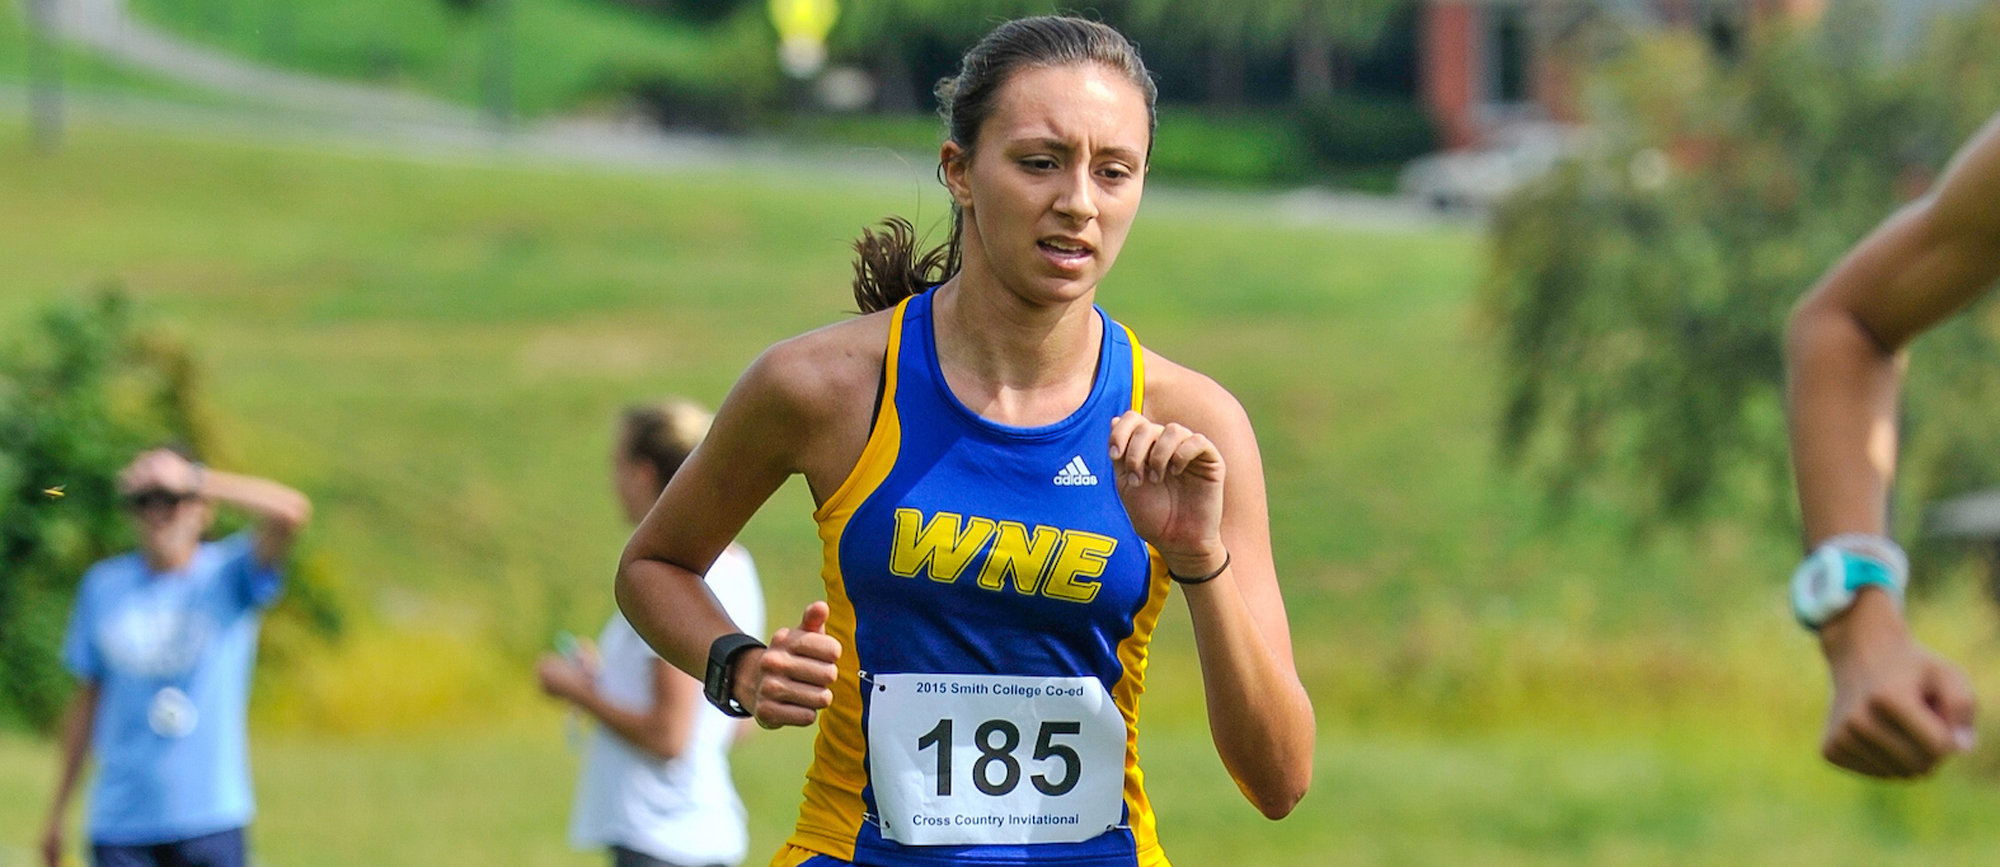 Western New England Places 19th at James Earley Invitational